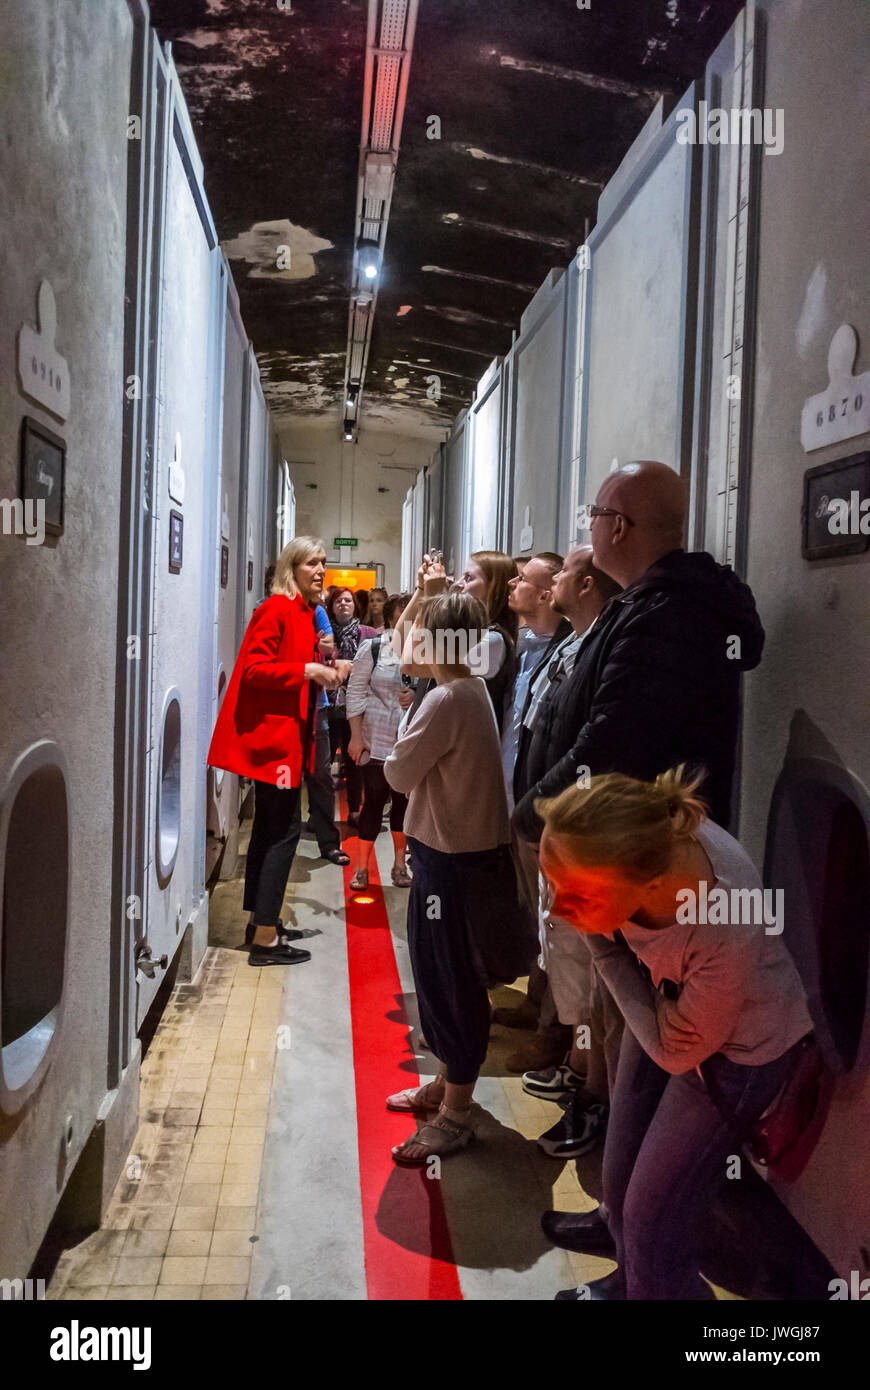 Reims, France, Group of Tourists Visiting Mumm Champagne Cave, Listening to French Tour Guide, inside - Stock Image